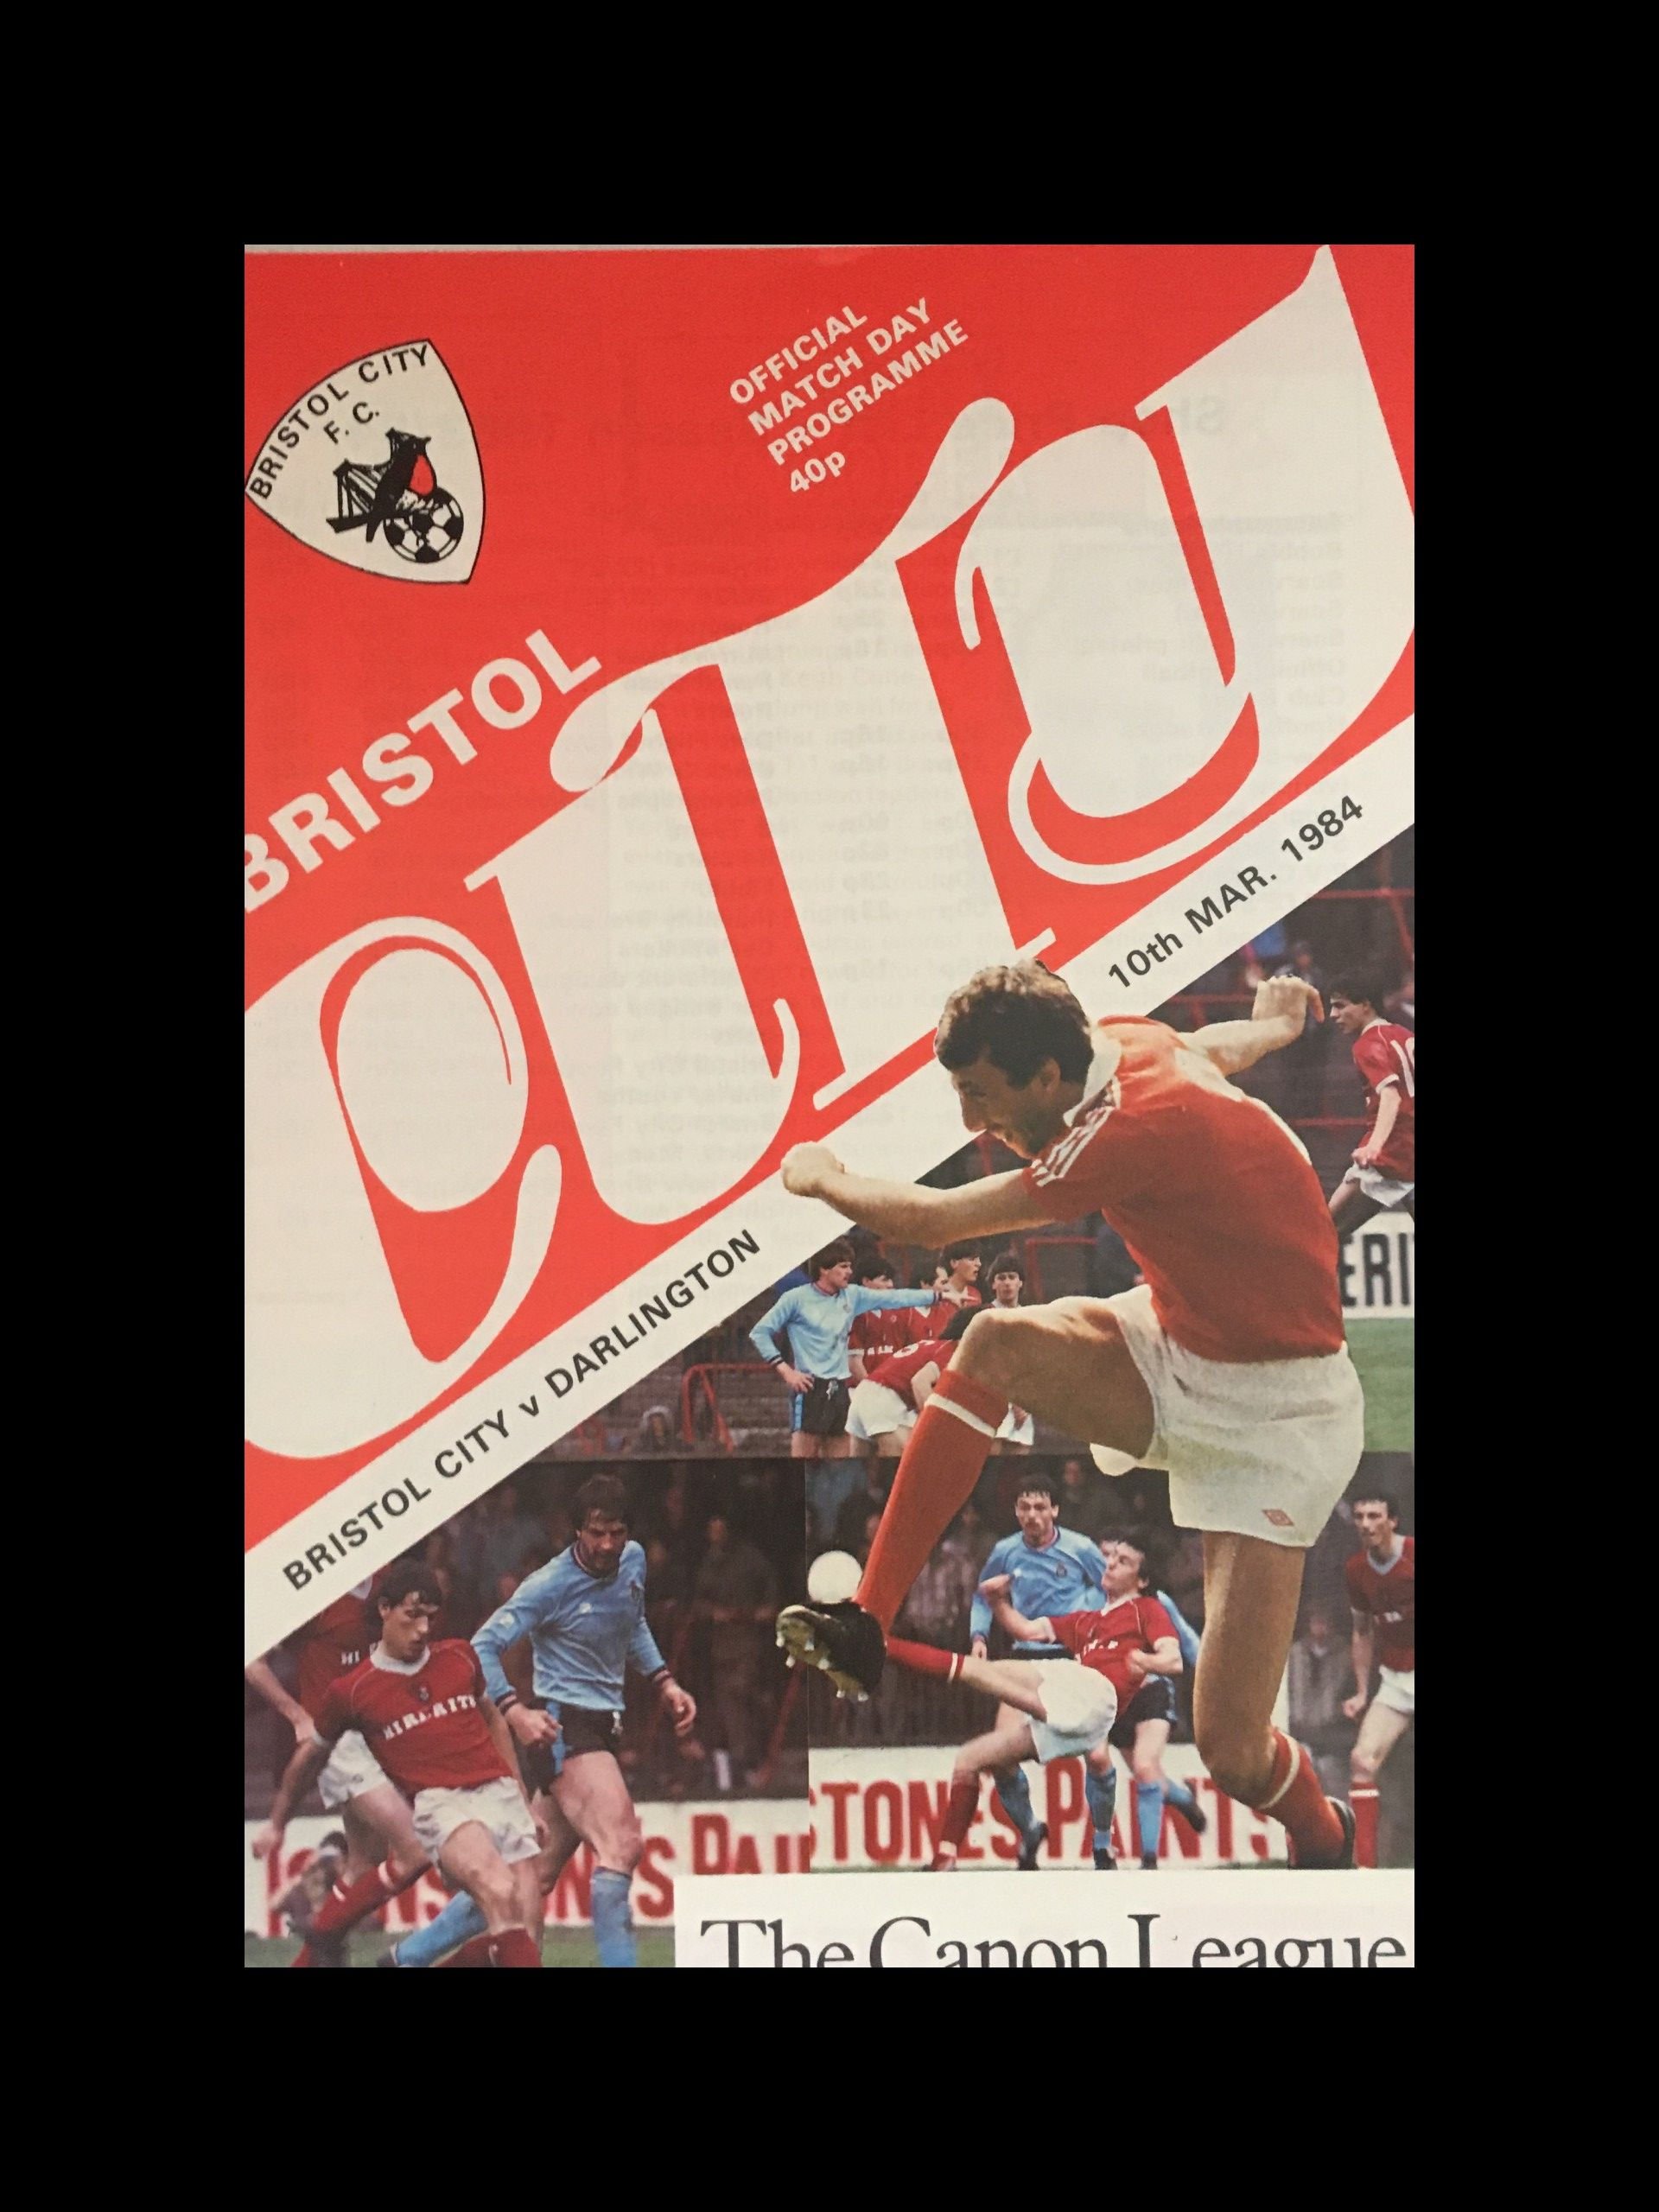 Bristol City v Darlington 10-03-84 Programme